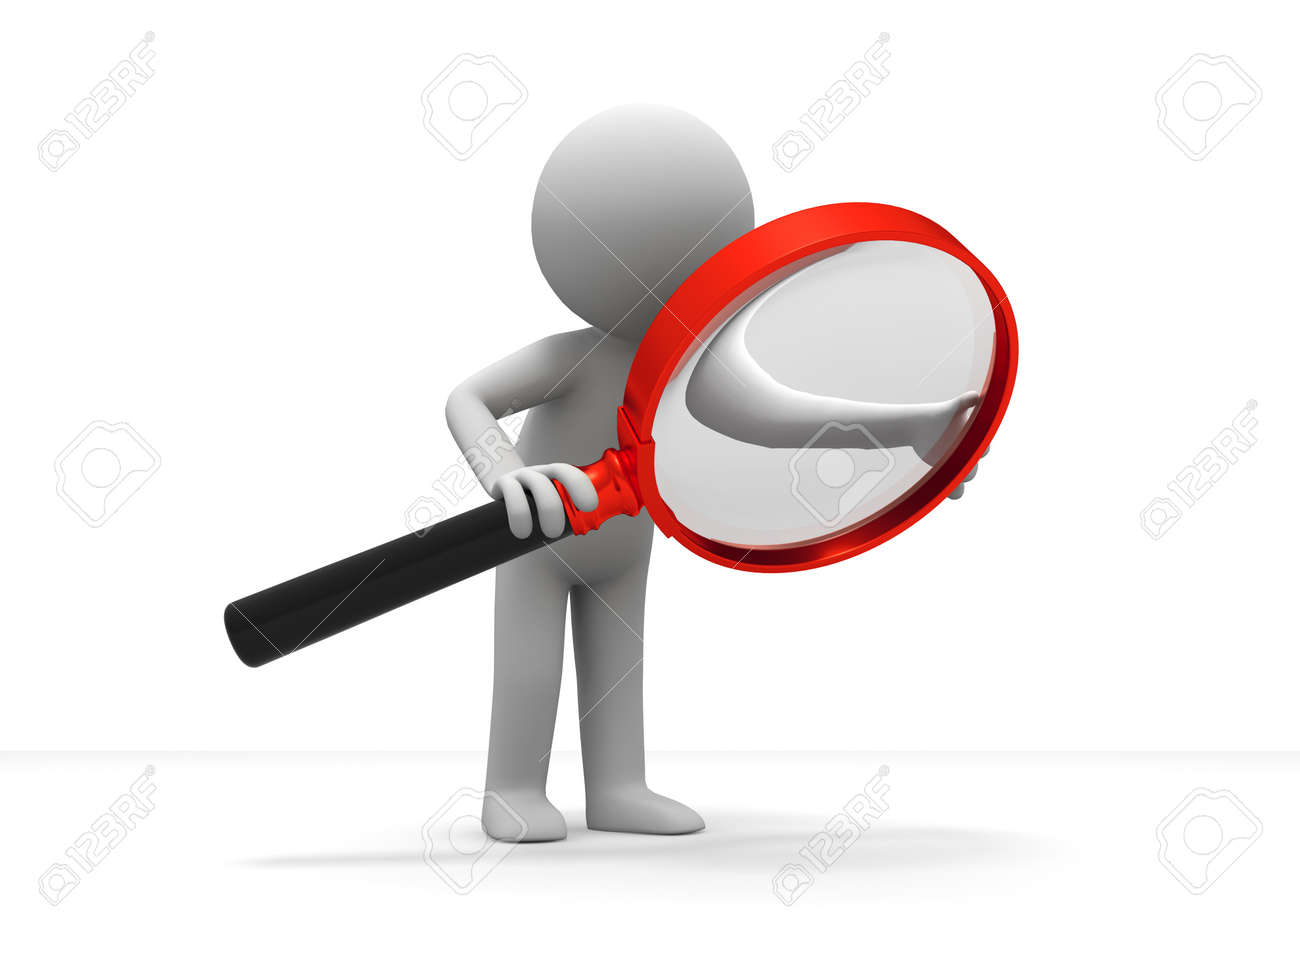 A Person Is Using The Magnifying Glass Stock Photo, Picture And Royalty  Free Image. Image 15405016.